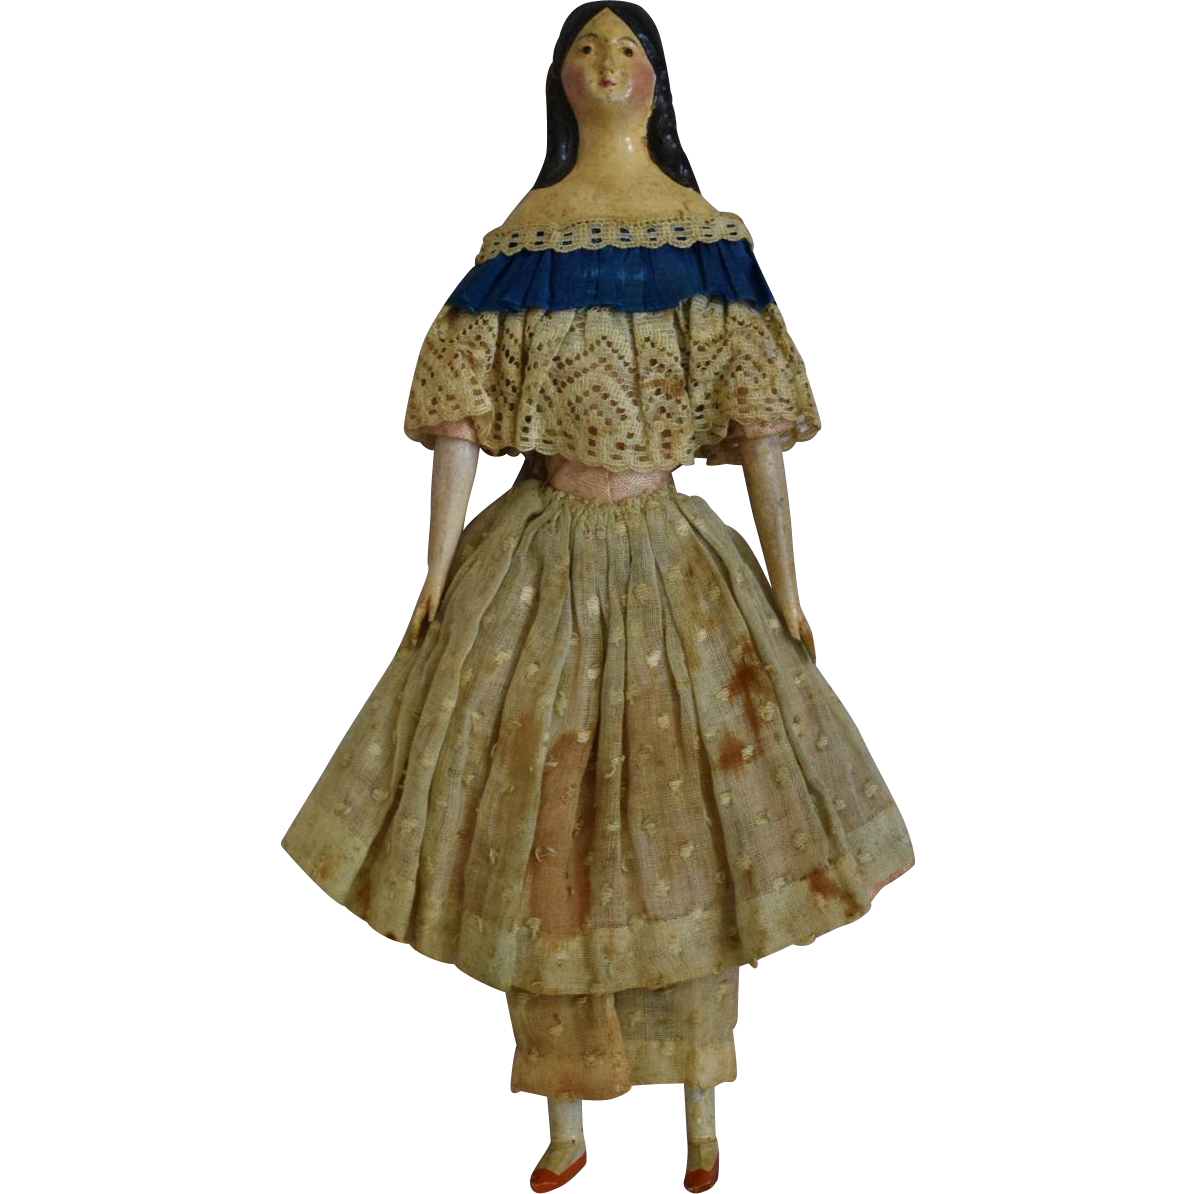 All Original German Milliner's Model Papier Mache Doll with Provenance